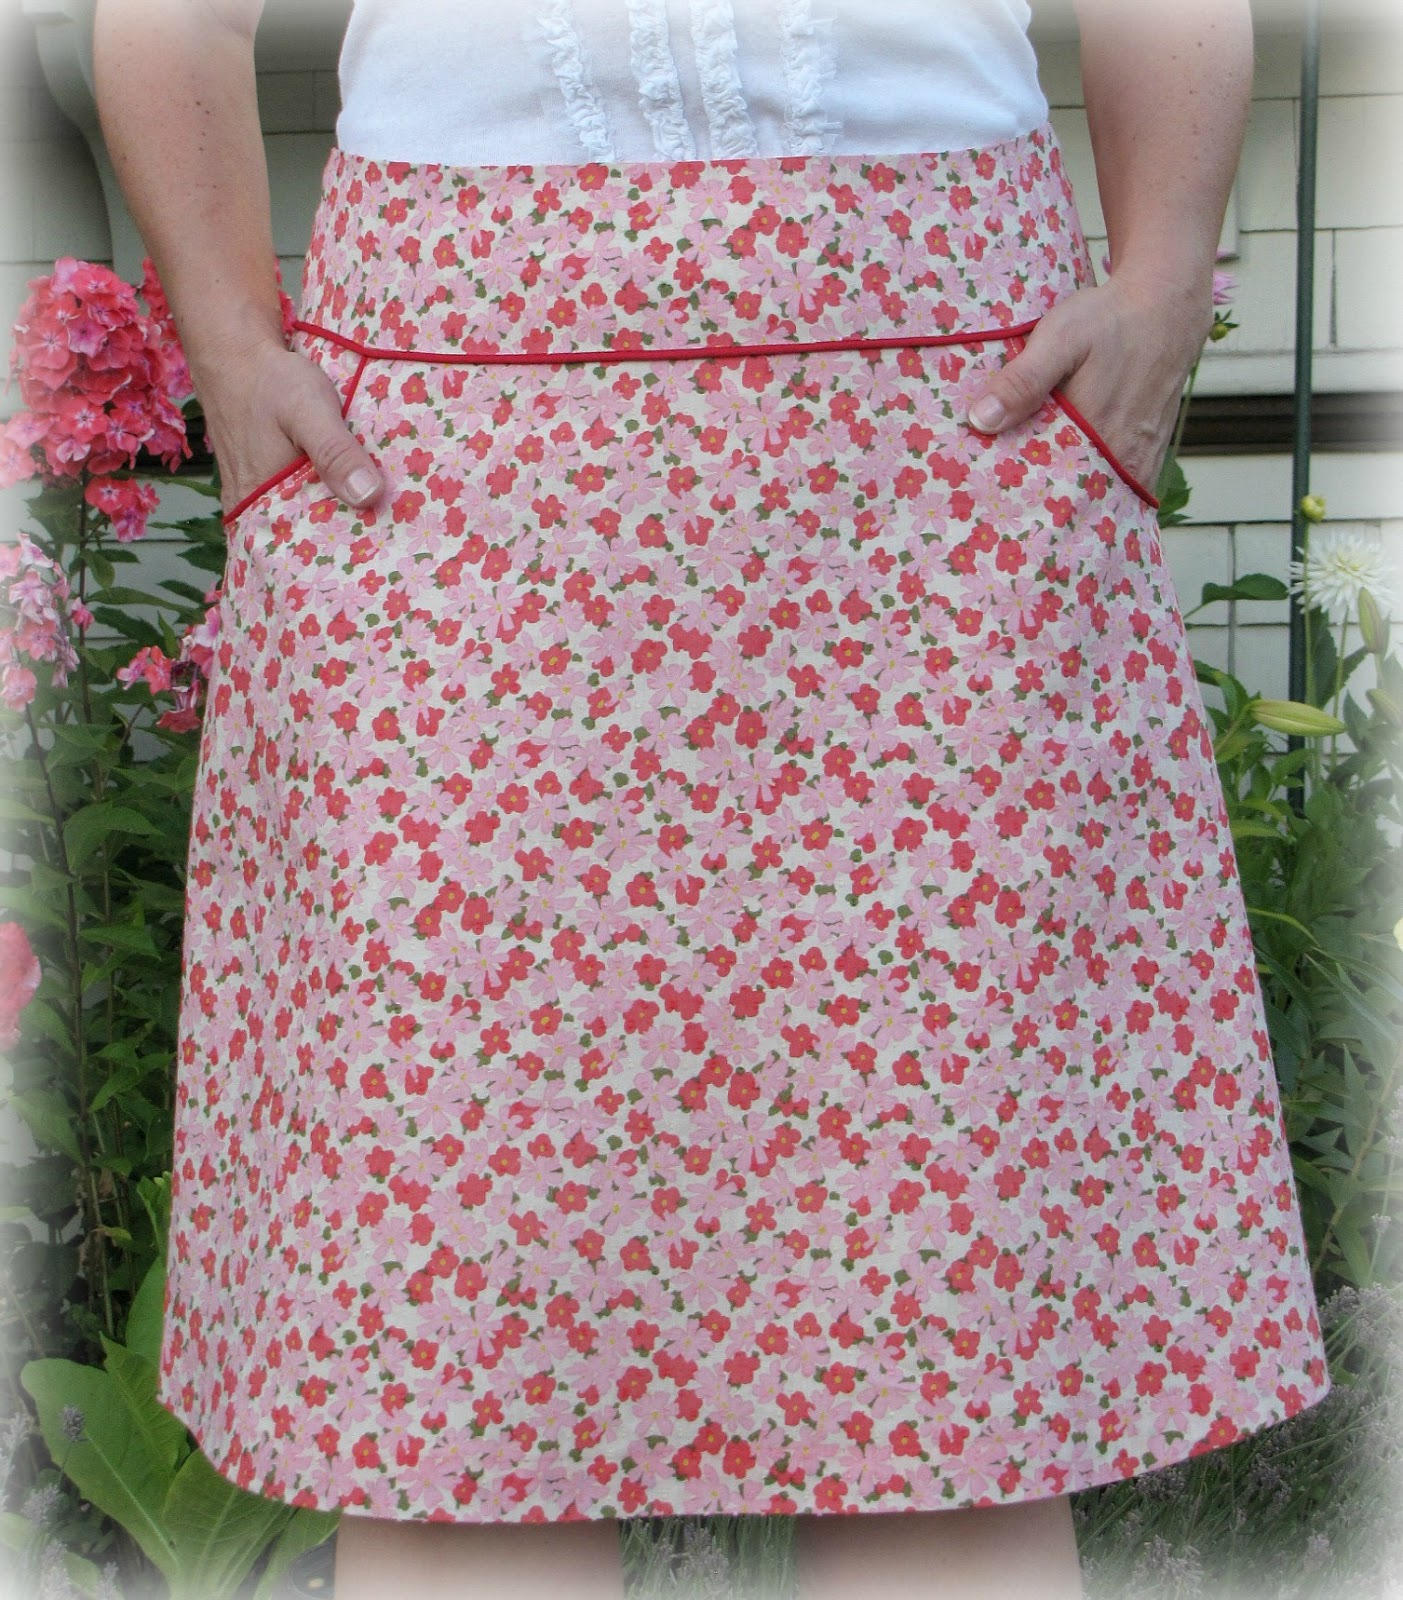 Vintage floral a line skirt super online sewing match challenge online sewing match hosted by sew mama sew the first challenge was to make and design an a line skirt with the help of deborah moebes craftsy class jeuxipadfo Image collections